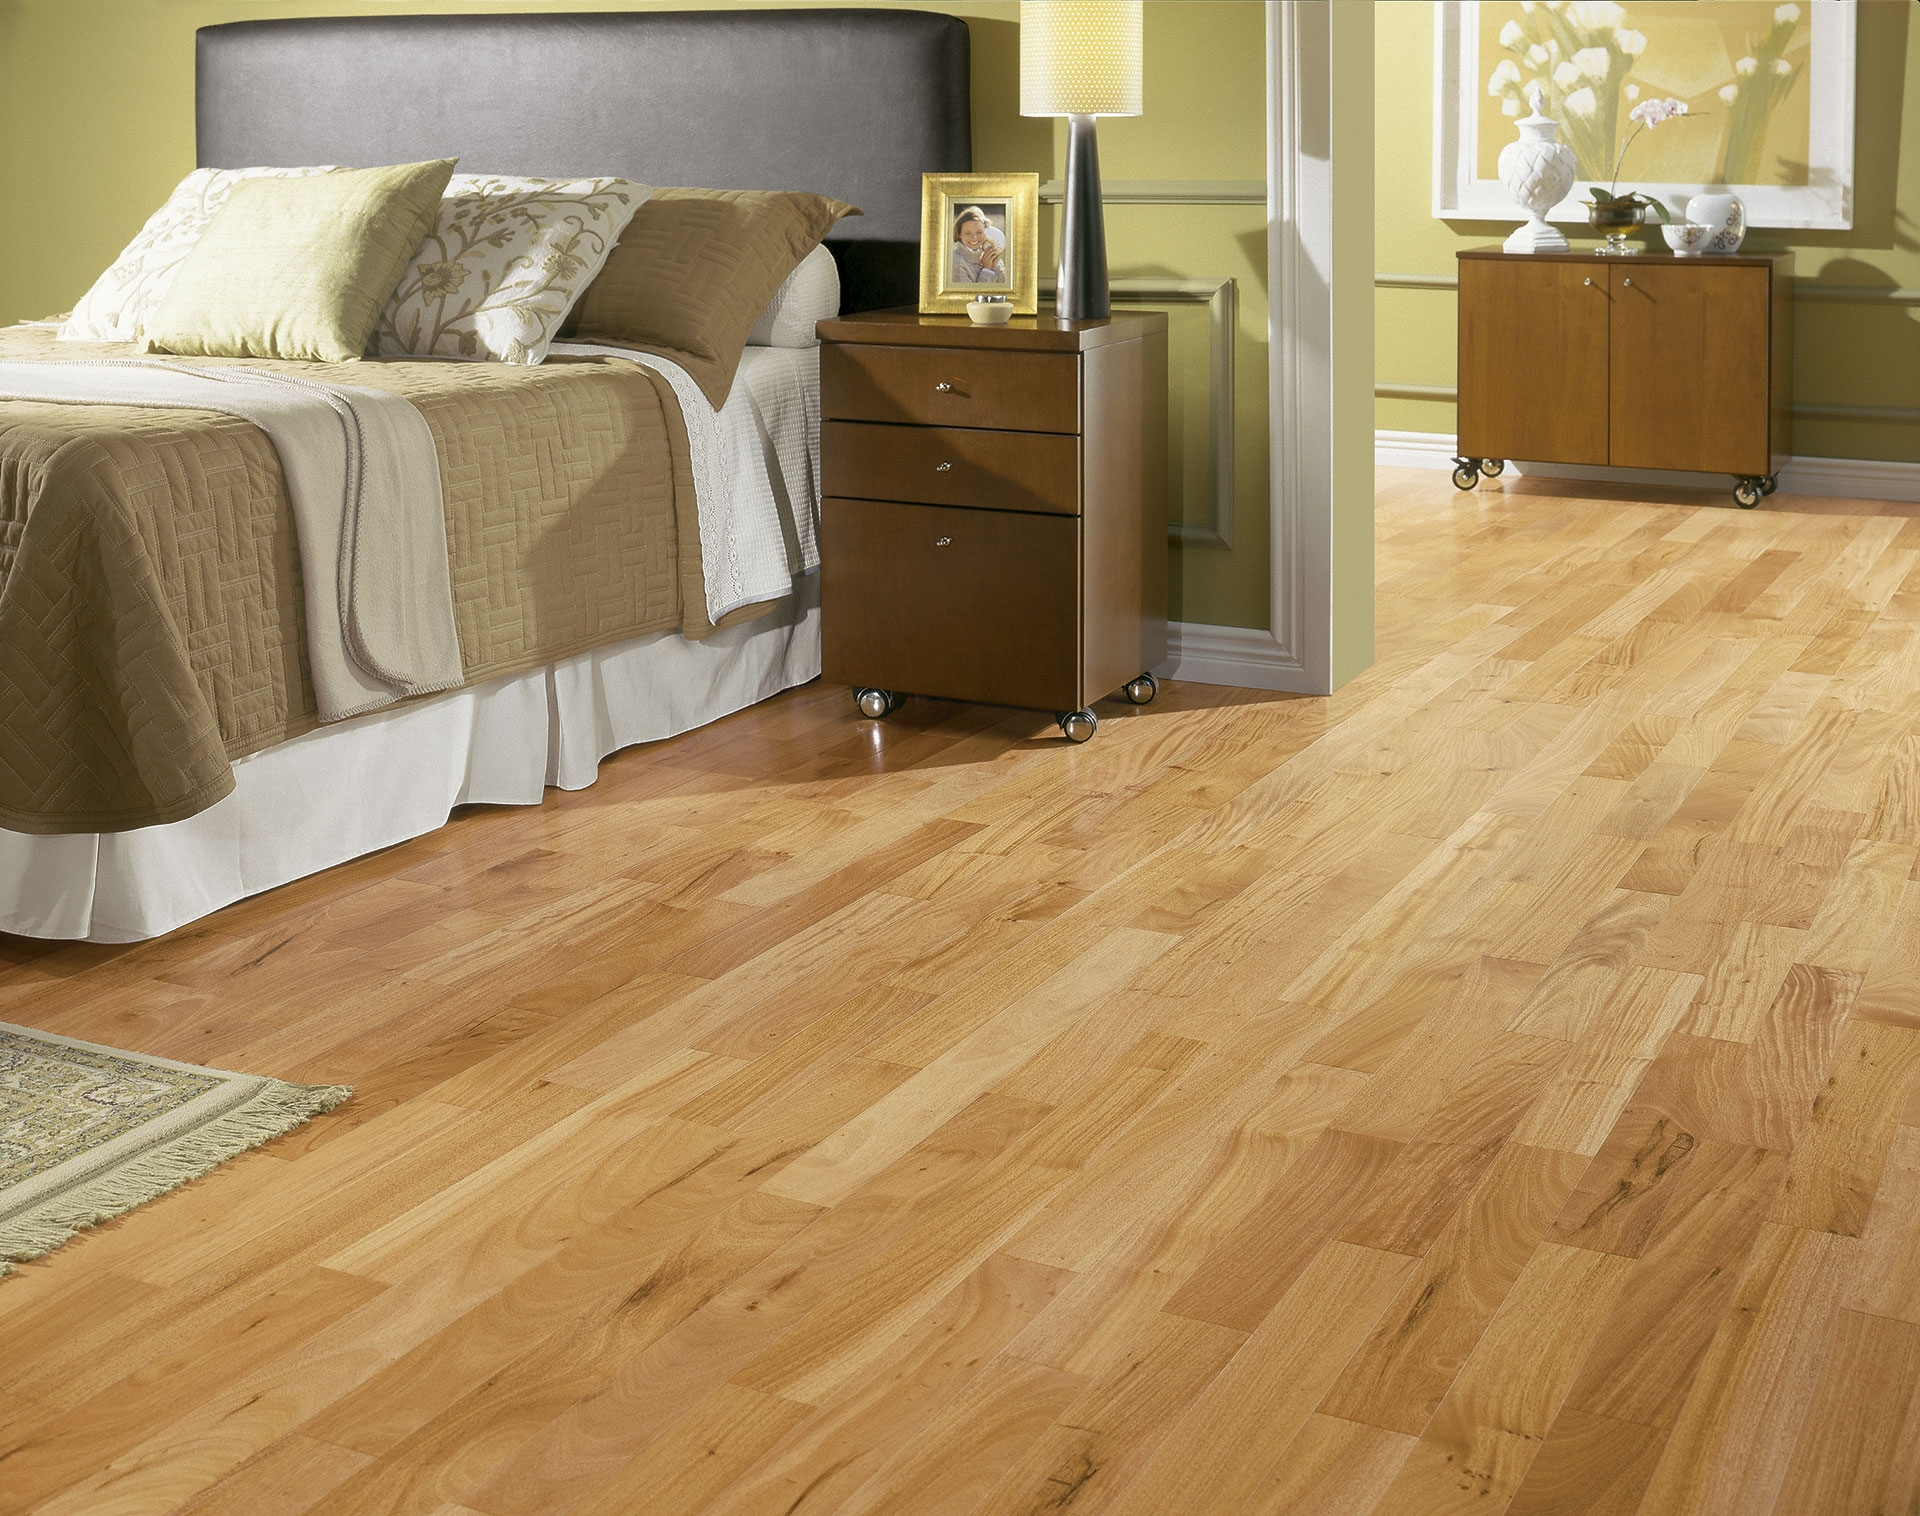 Best Type Of Wood Flooring For Bedrooms